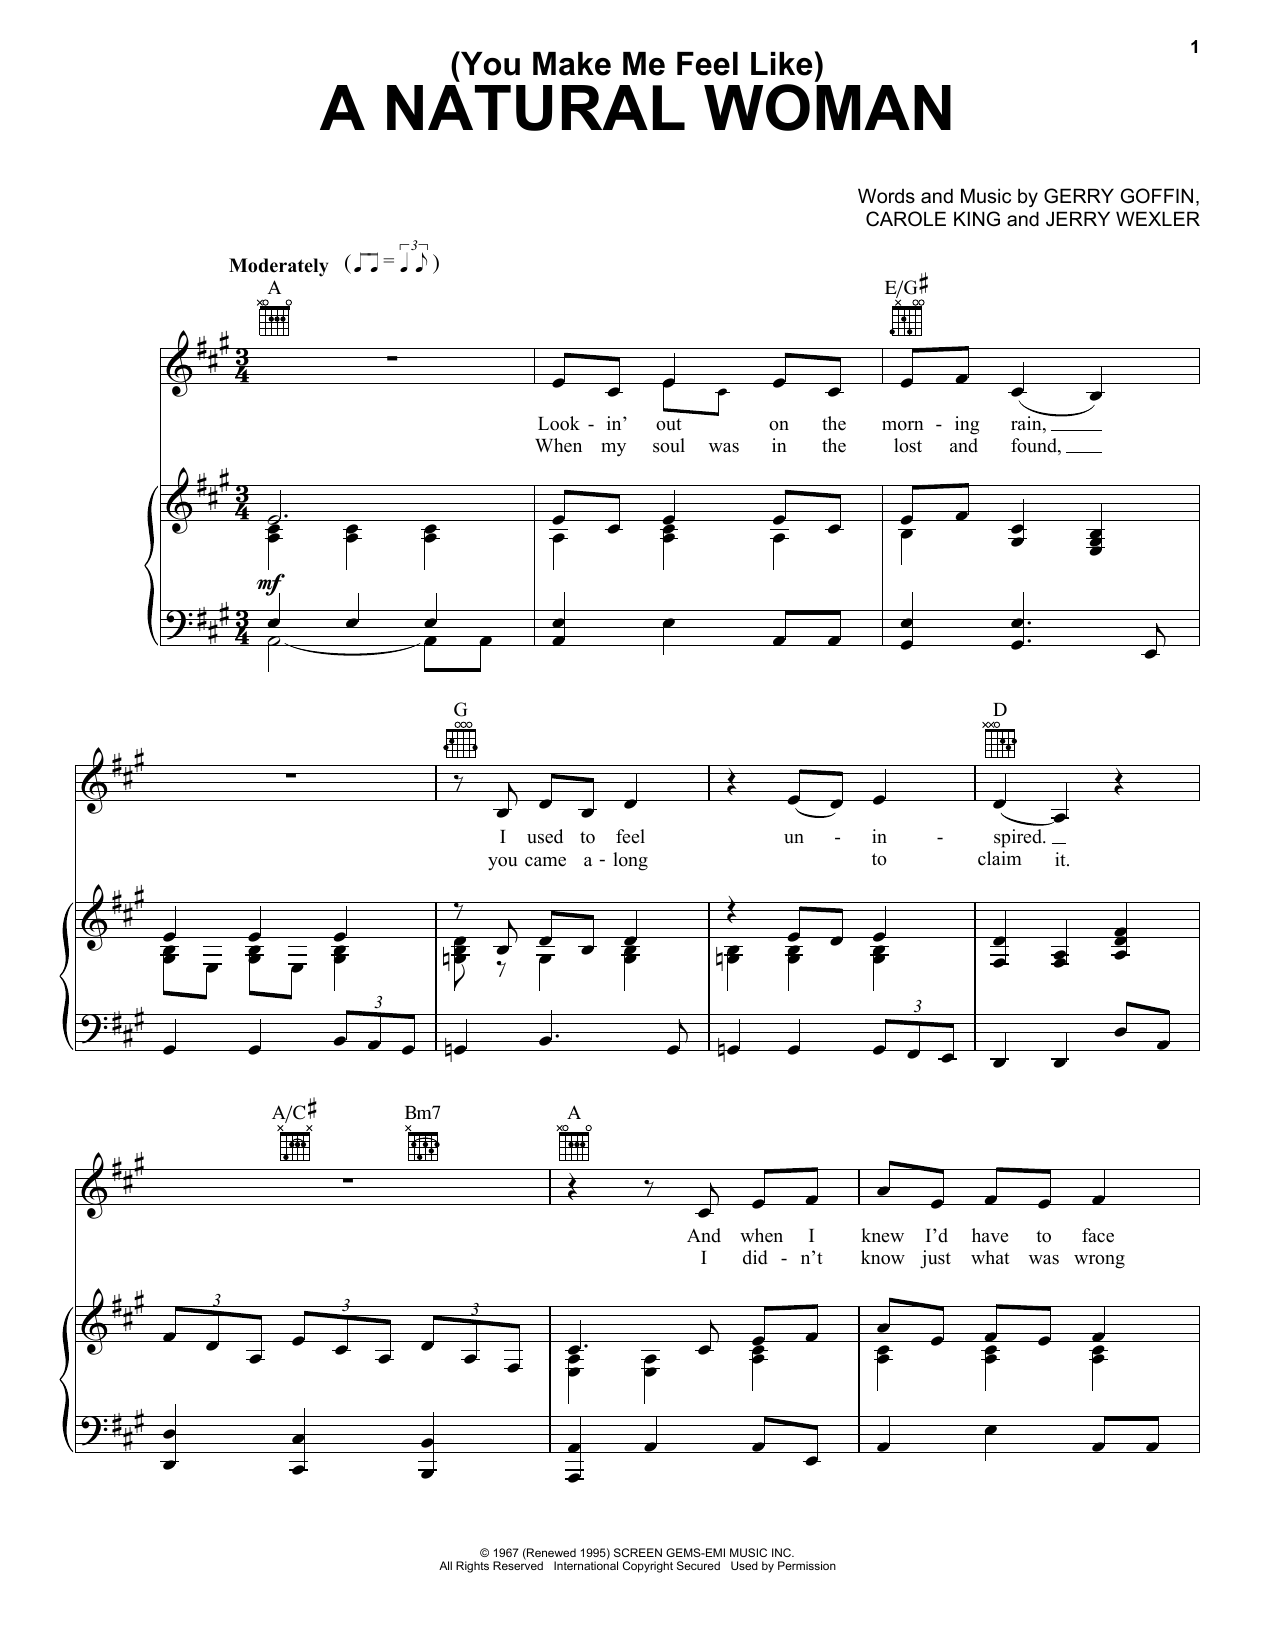 Aretha Franklin (You Make Me Feel Like) A Natural Woman sheet music notes and chords